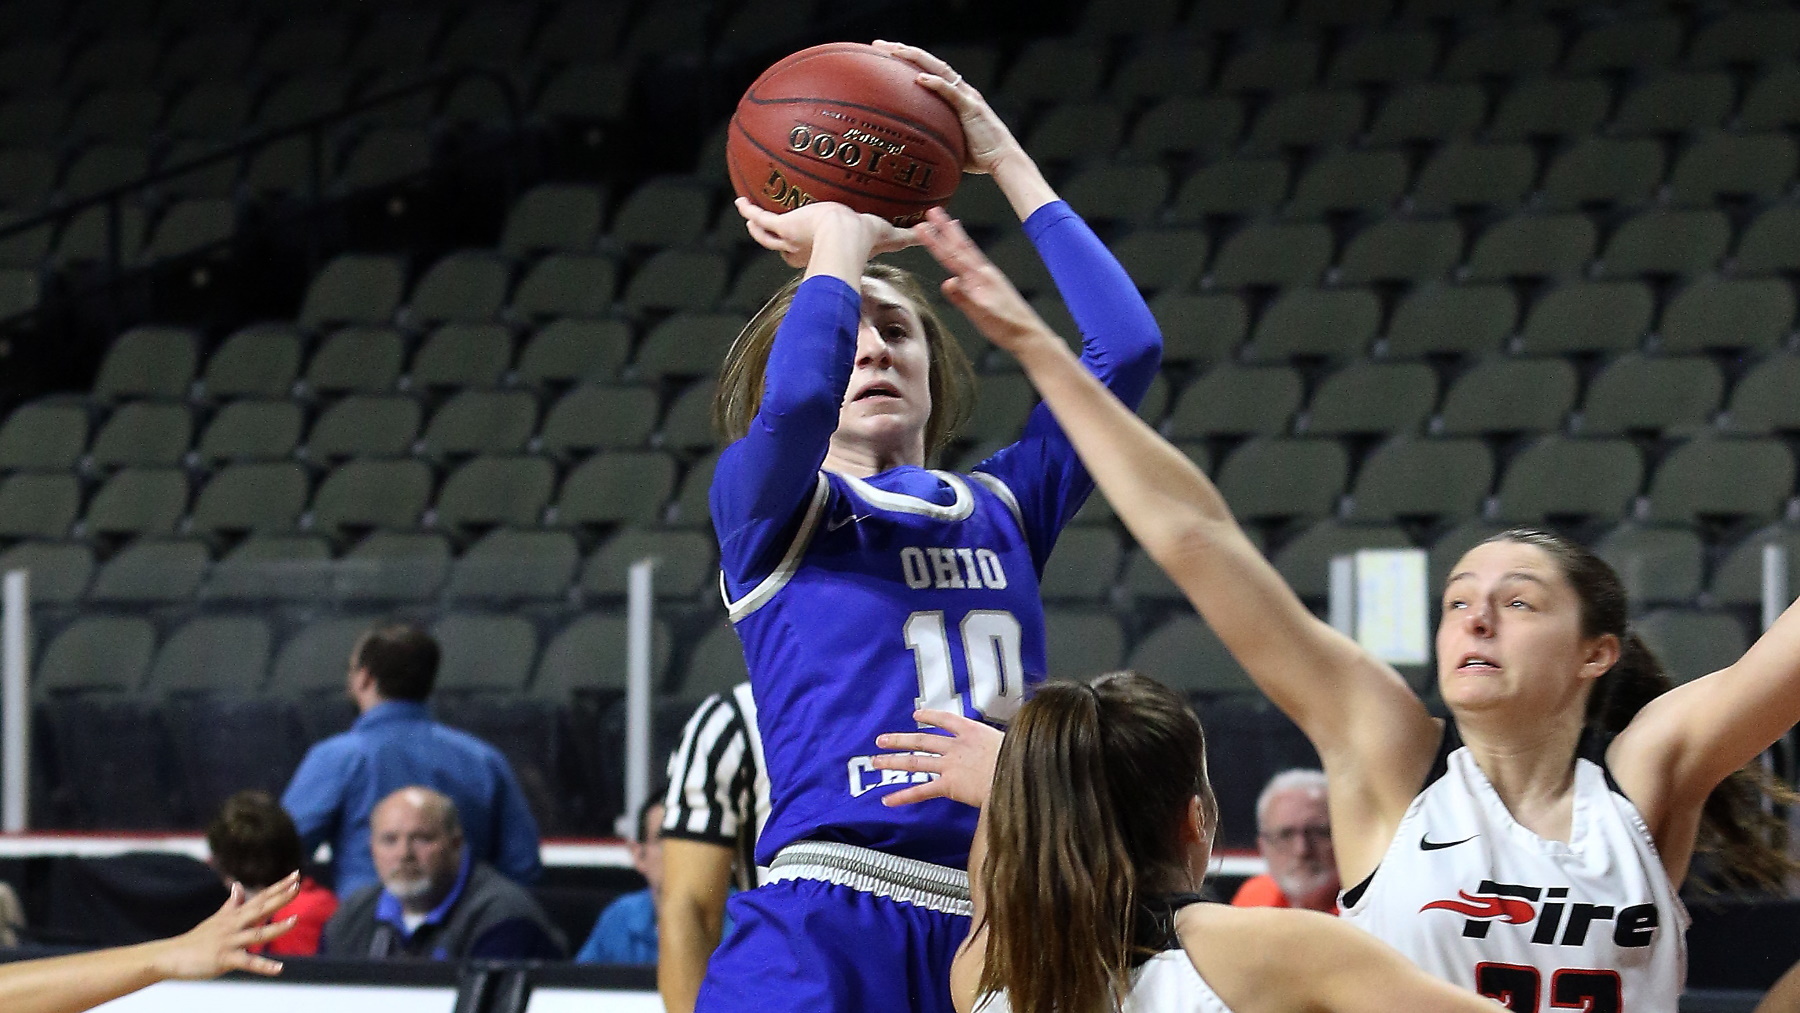 Lady Trailblazers End Historic Season With Loss In NAIA DII Tournament image